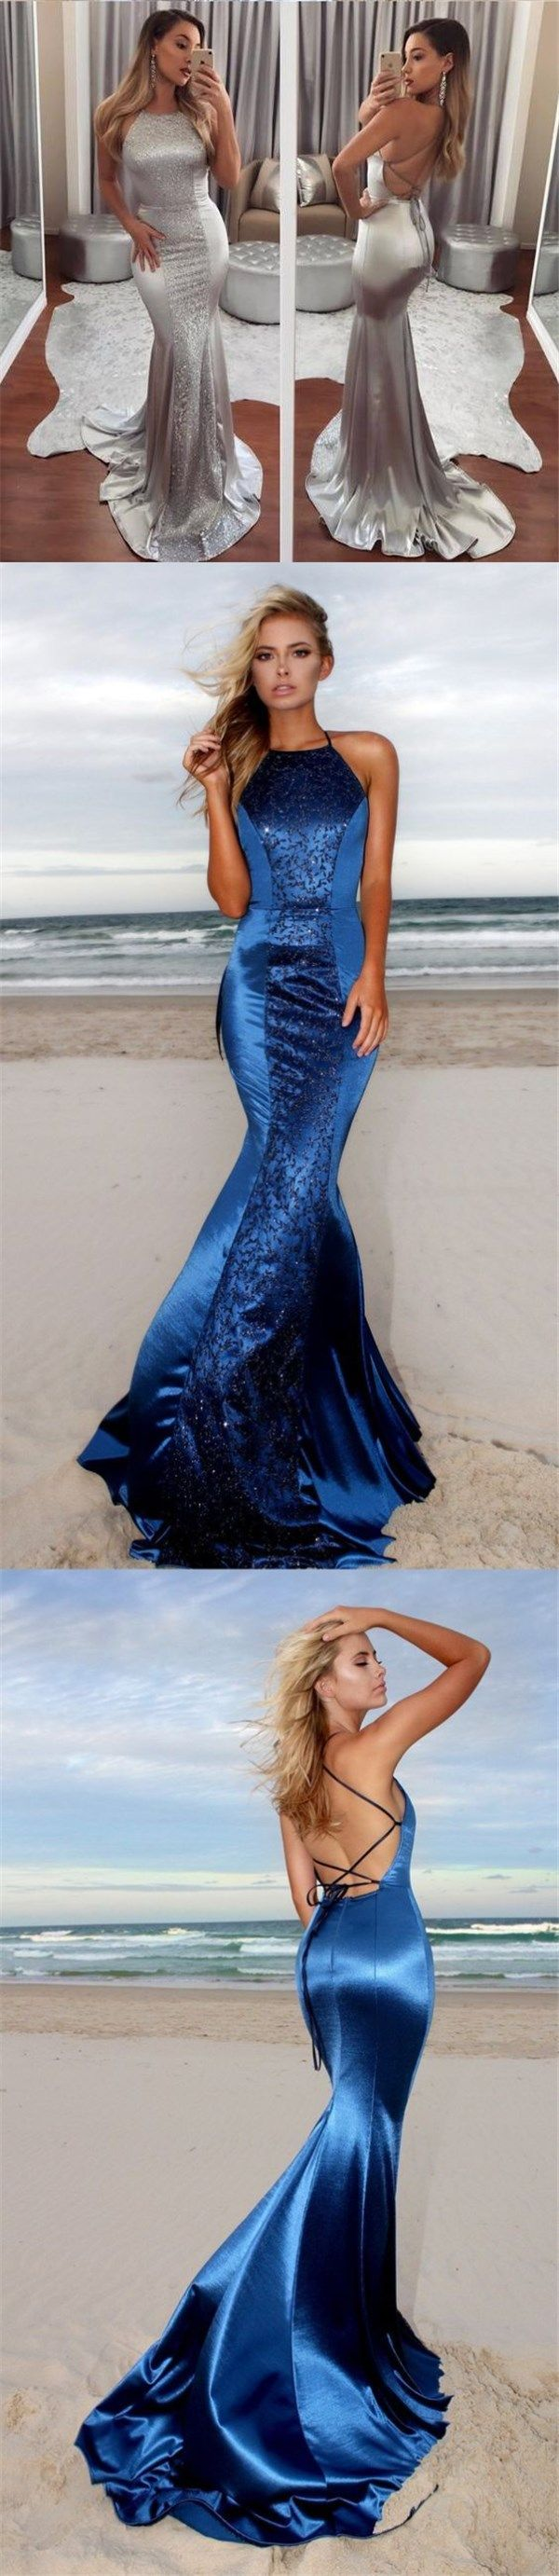 Charming Blue and Silver Sparkly Prom Dresses, Fashion Newest Gorgeous Prom Dress, Evening Dress, PD0437